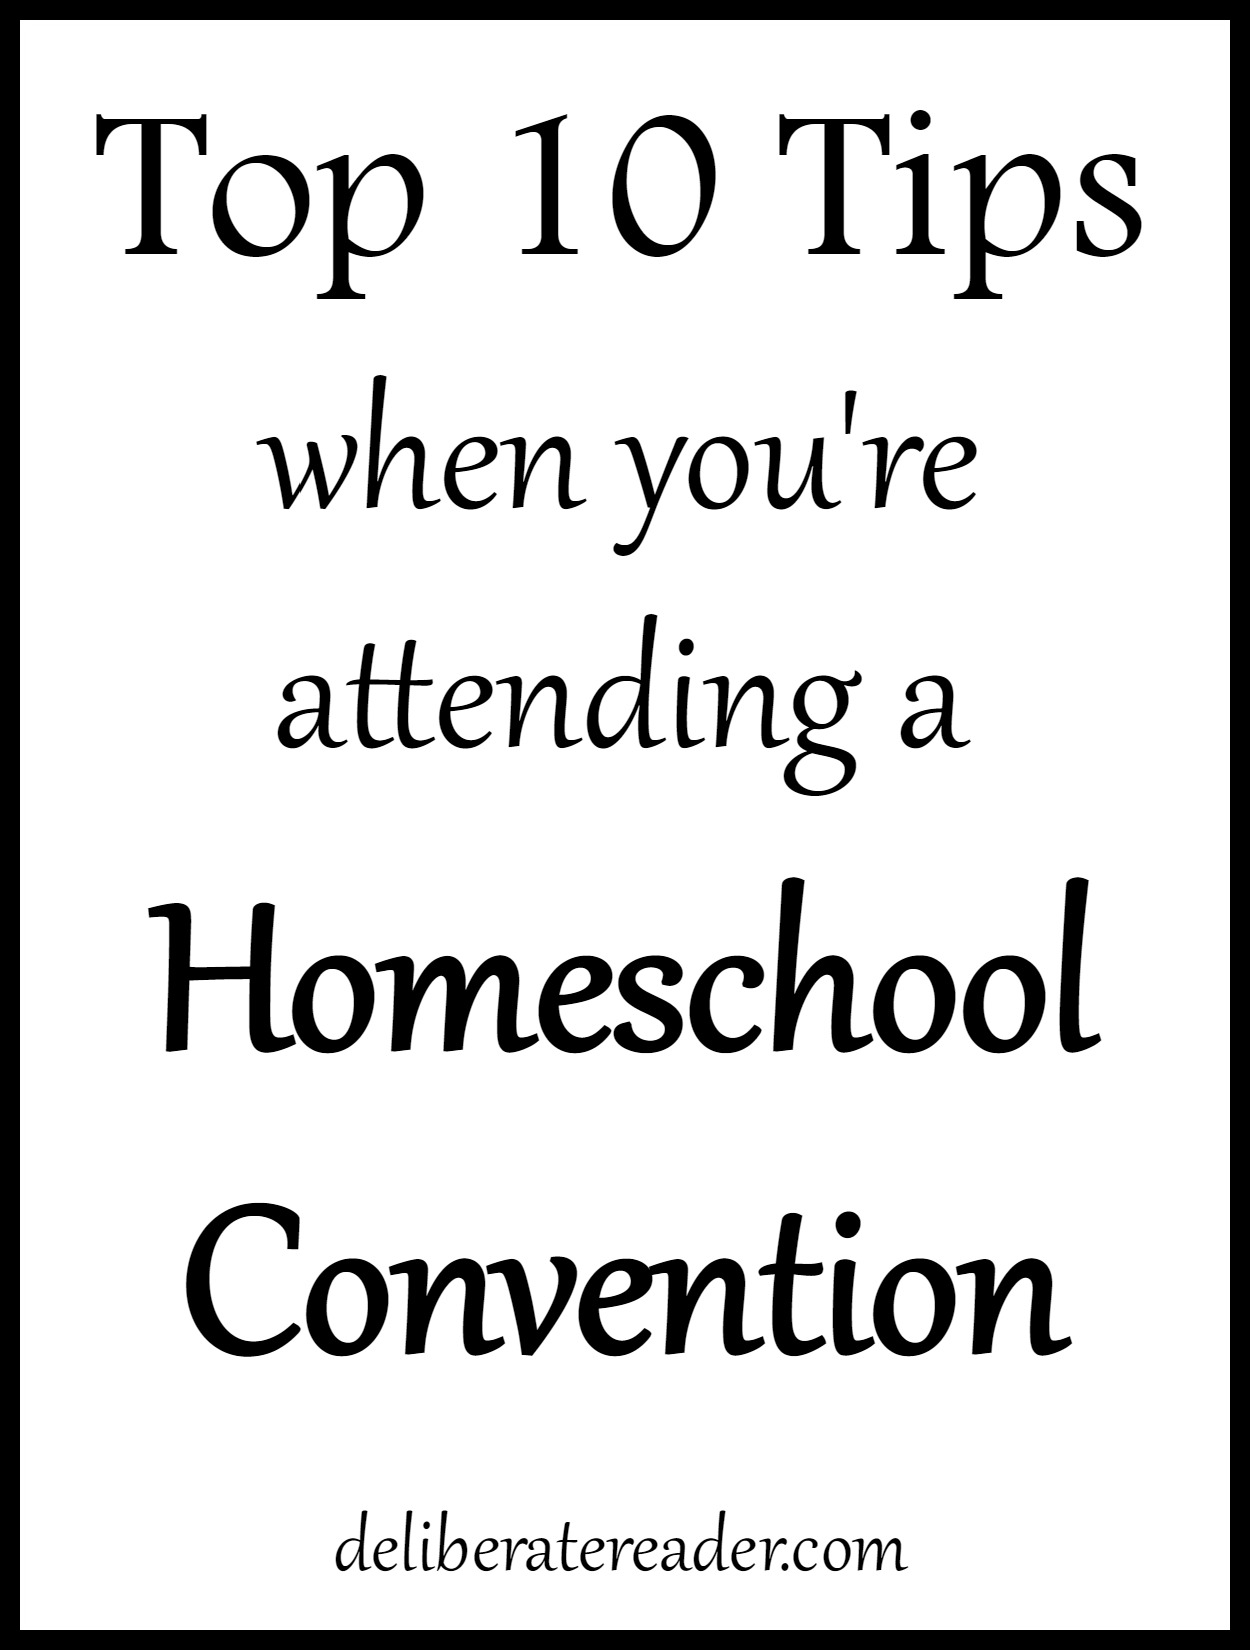 Top 10 Tips for attending a homeschool convention